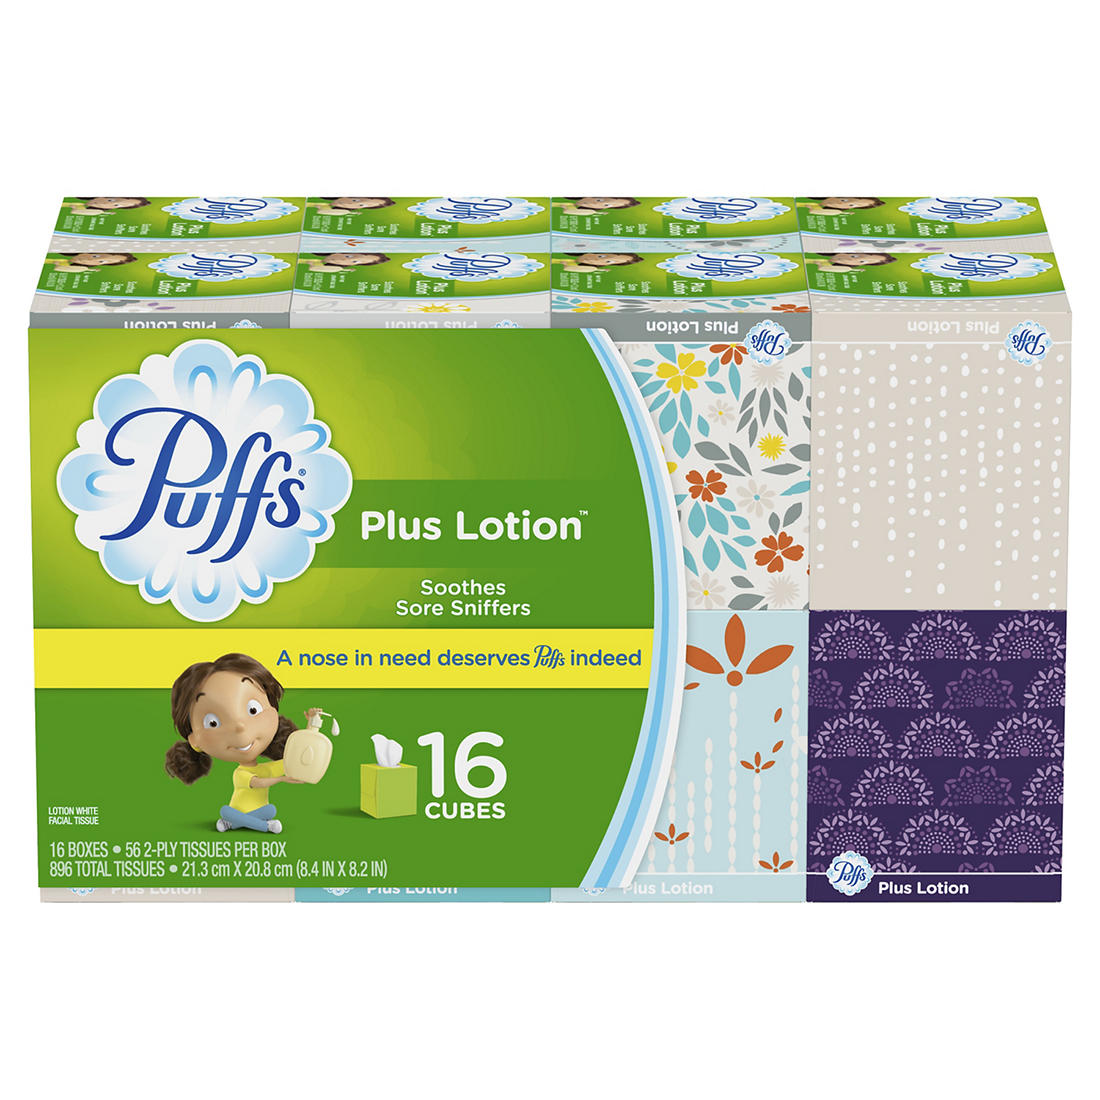 Puffs Plus Lotion Two-Ply Facial Tissues,..